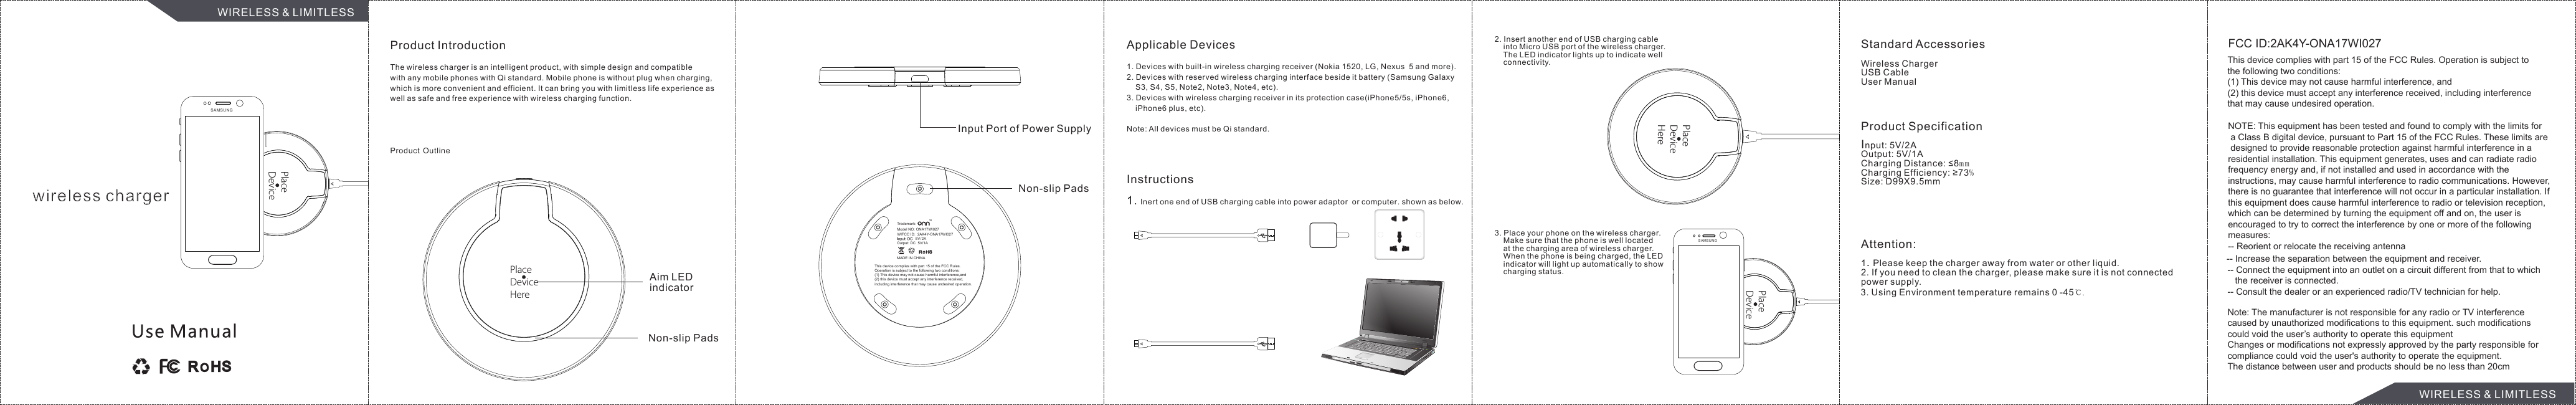 jetech wireless charger instructions